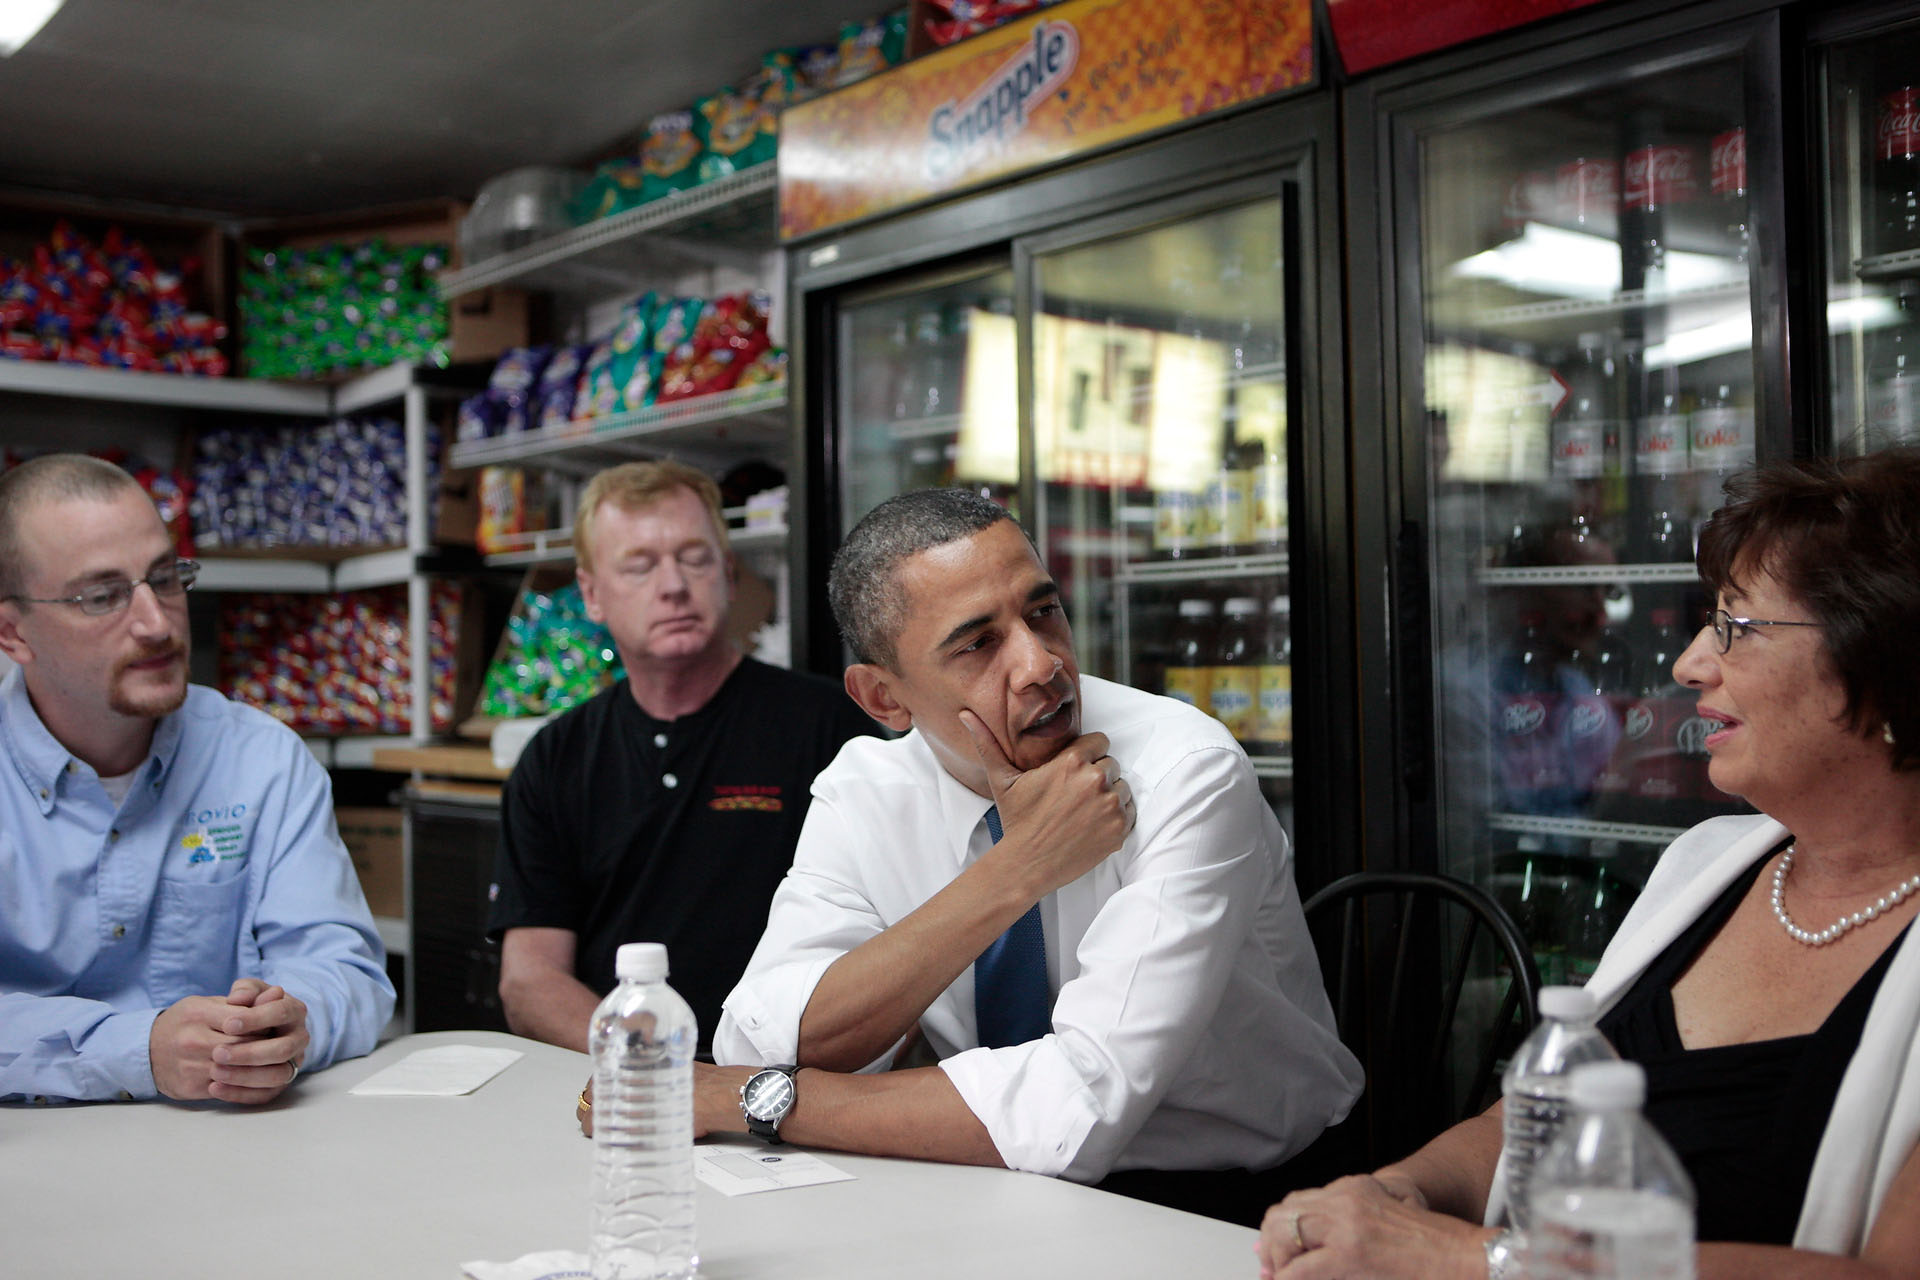 President Obama Speaks with Small Business Owners